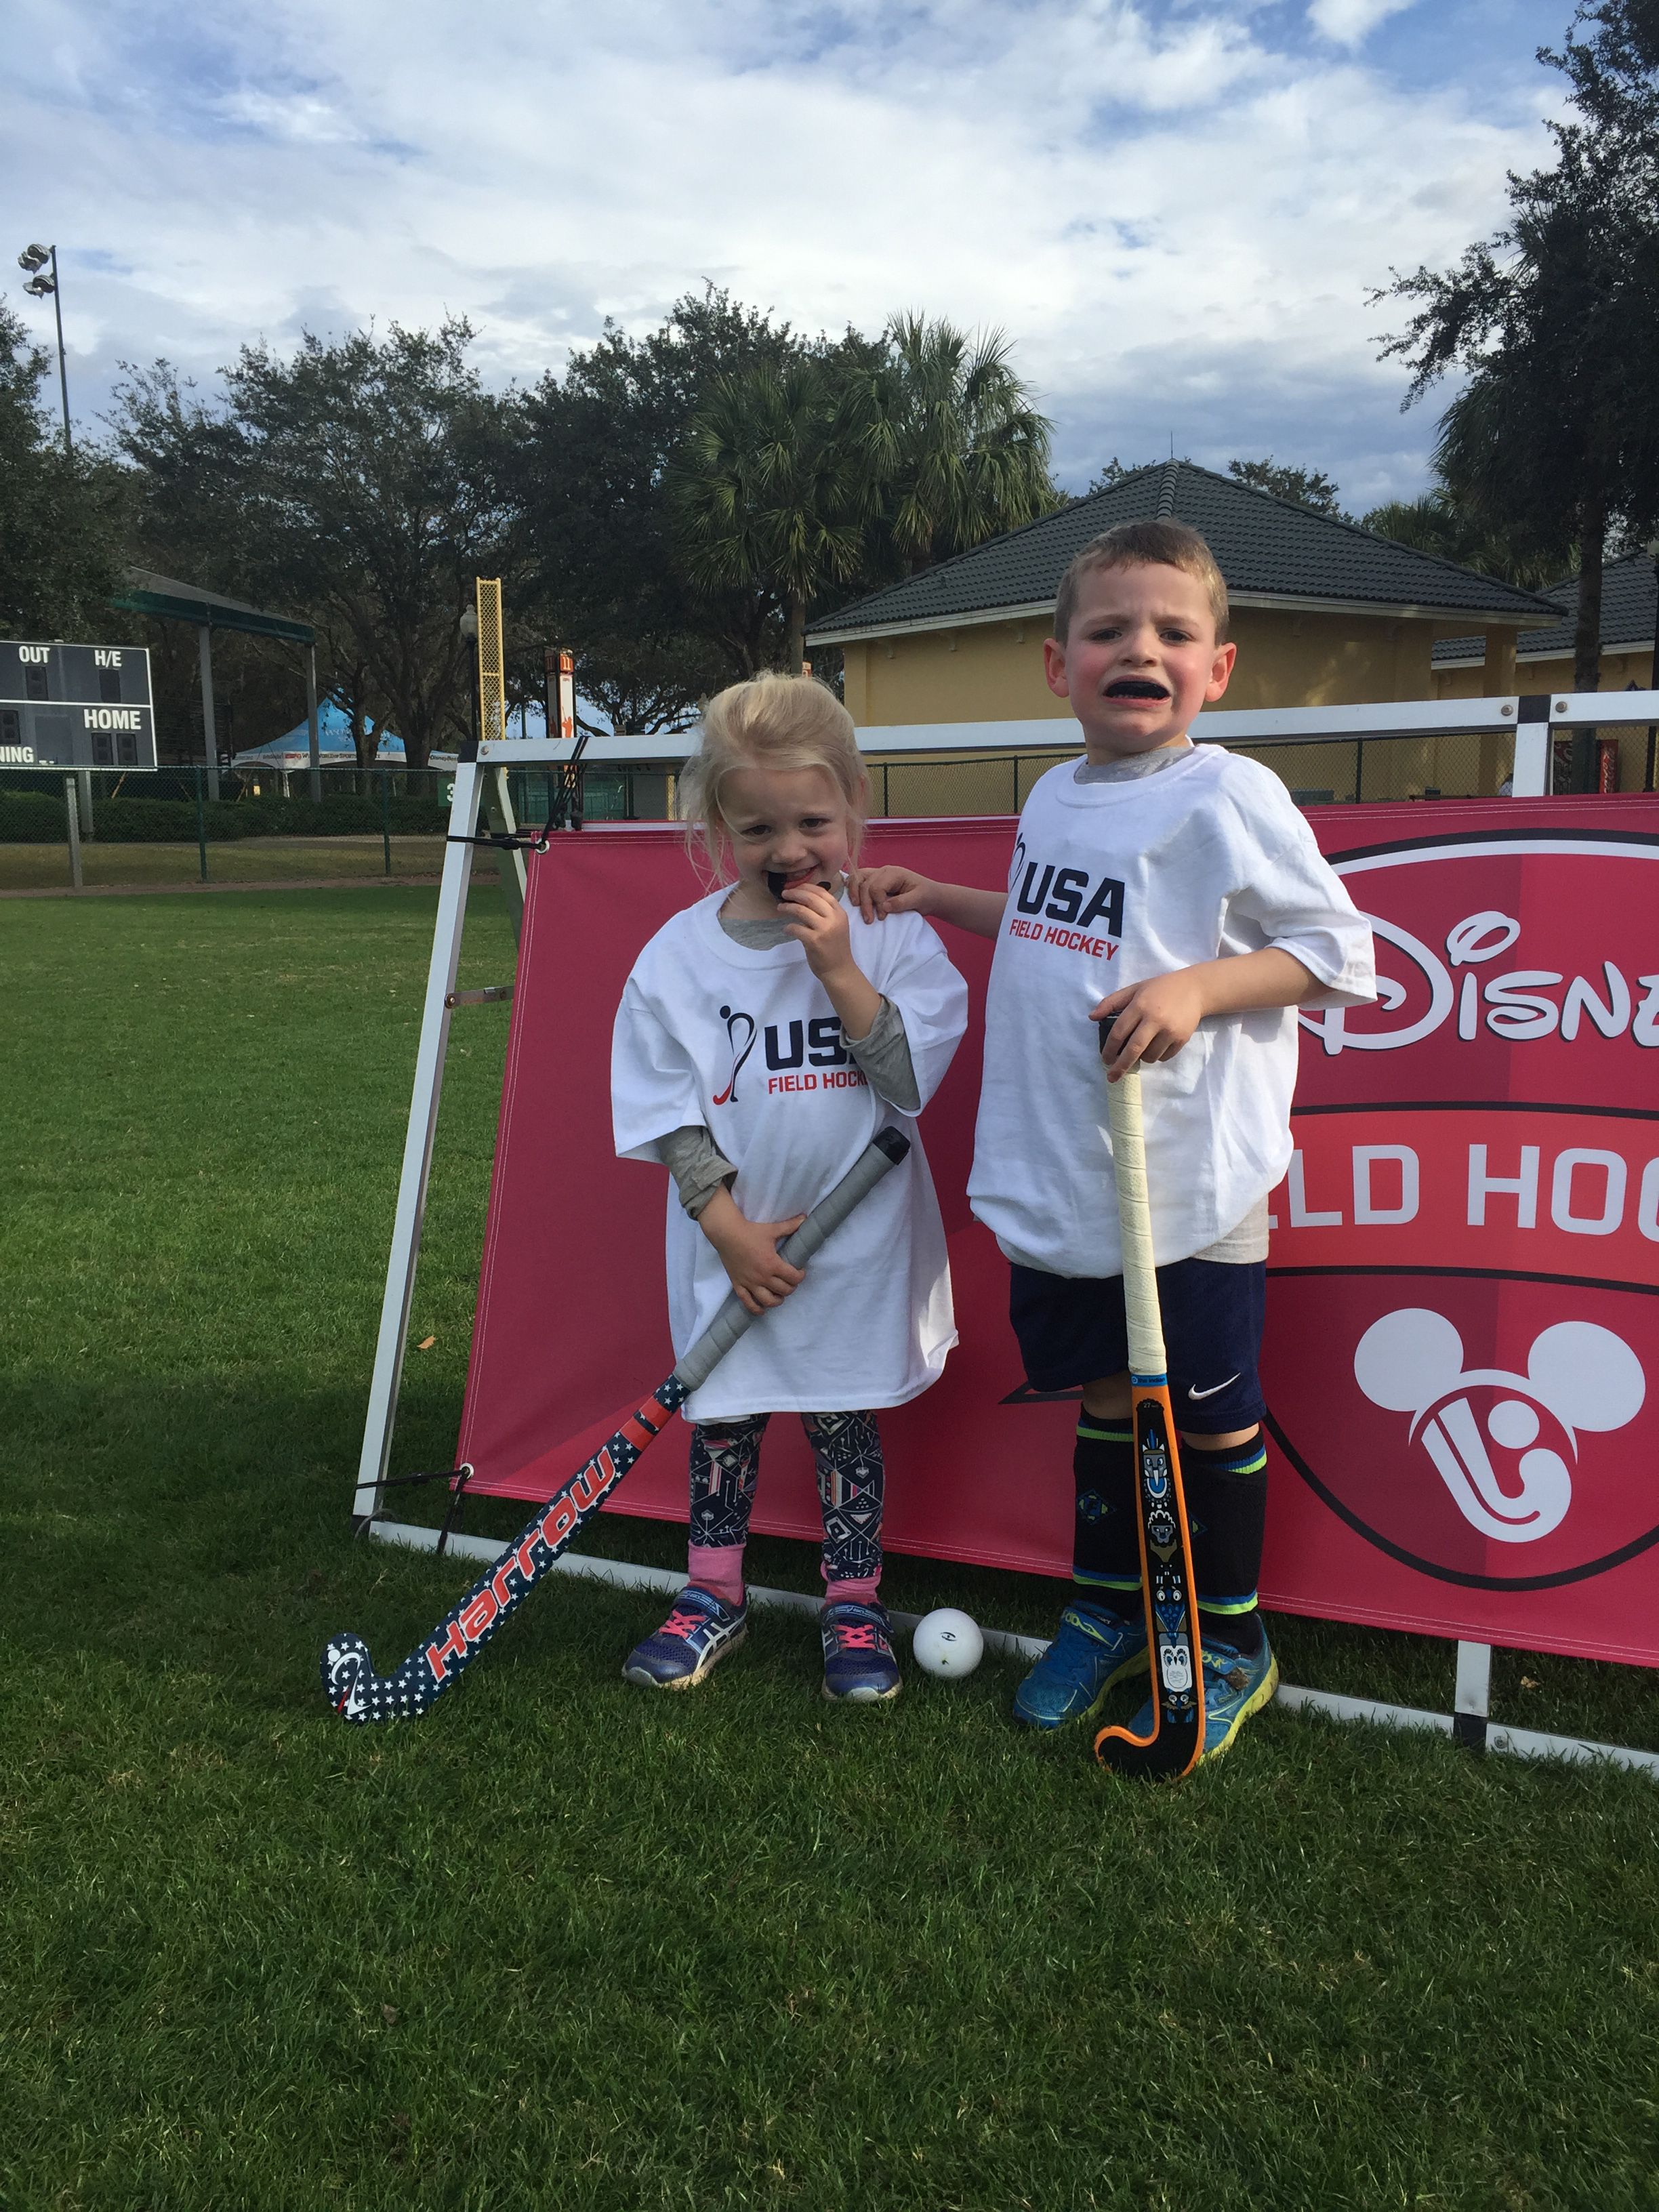 Before Kids Can Play Like A Pro They Must Enjoy Playing The Game Like A Kid Steve Locker Disney Learn To Play Clinic Usa Hockey Kissimmee Sports Jersey